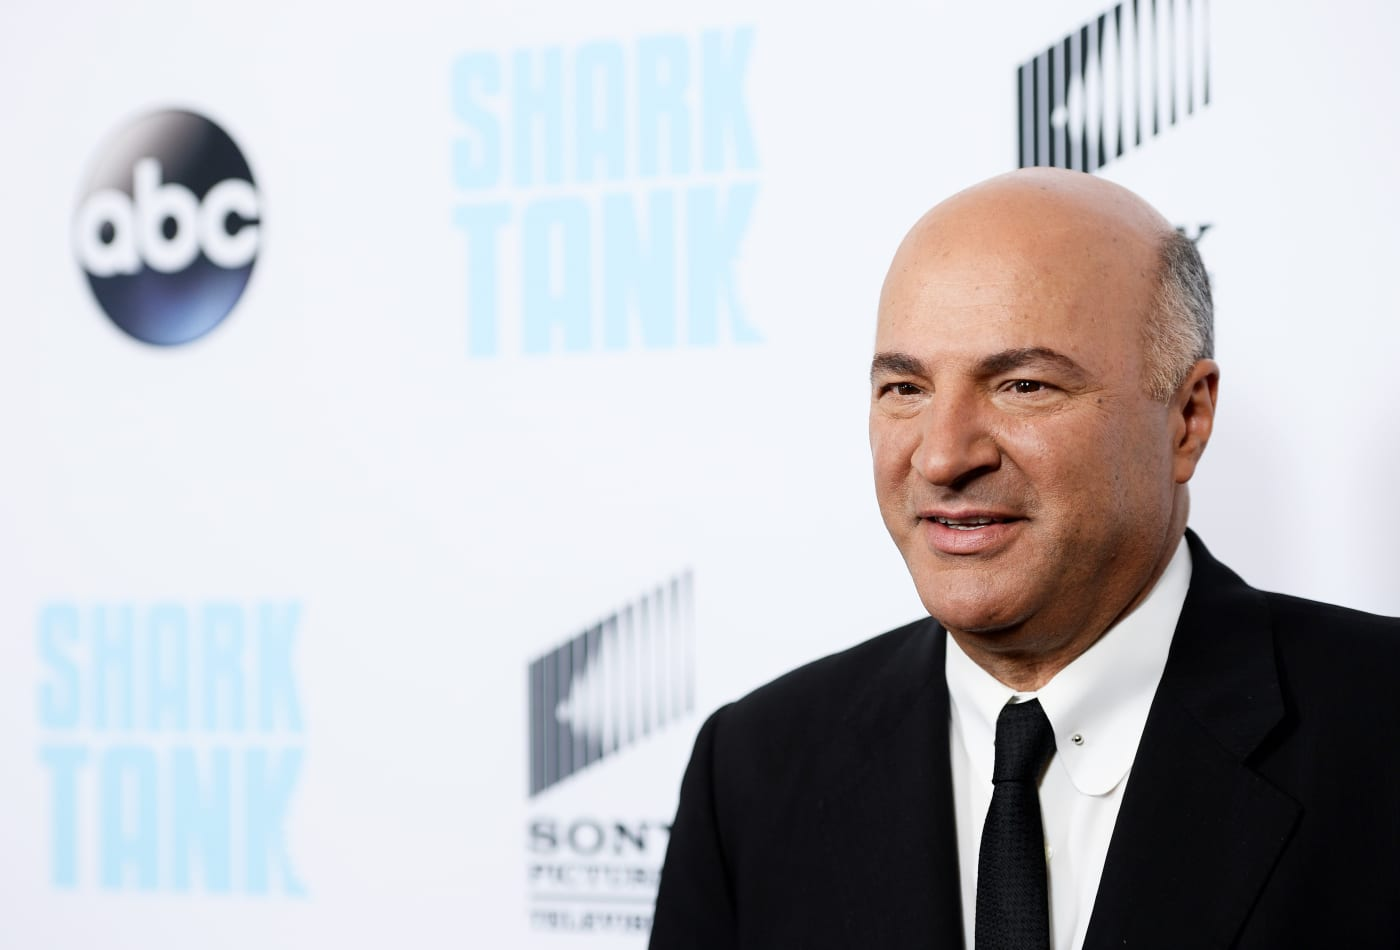 Kevin O'Leary: I make 'a lot' of money each month from my Cameo side hustle